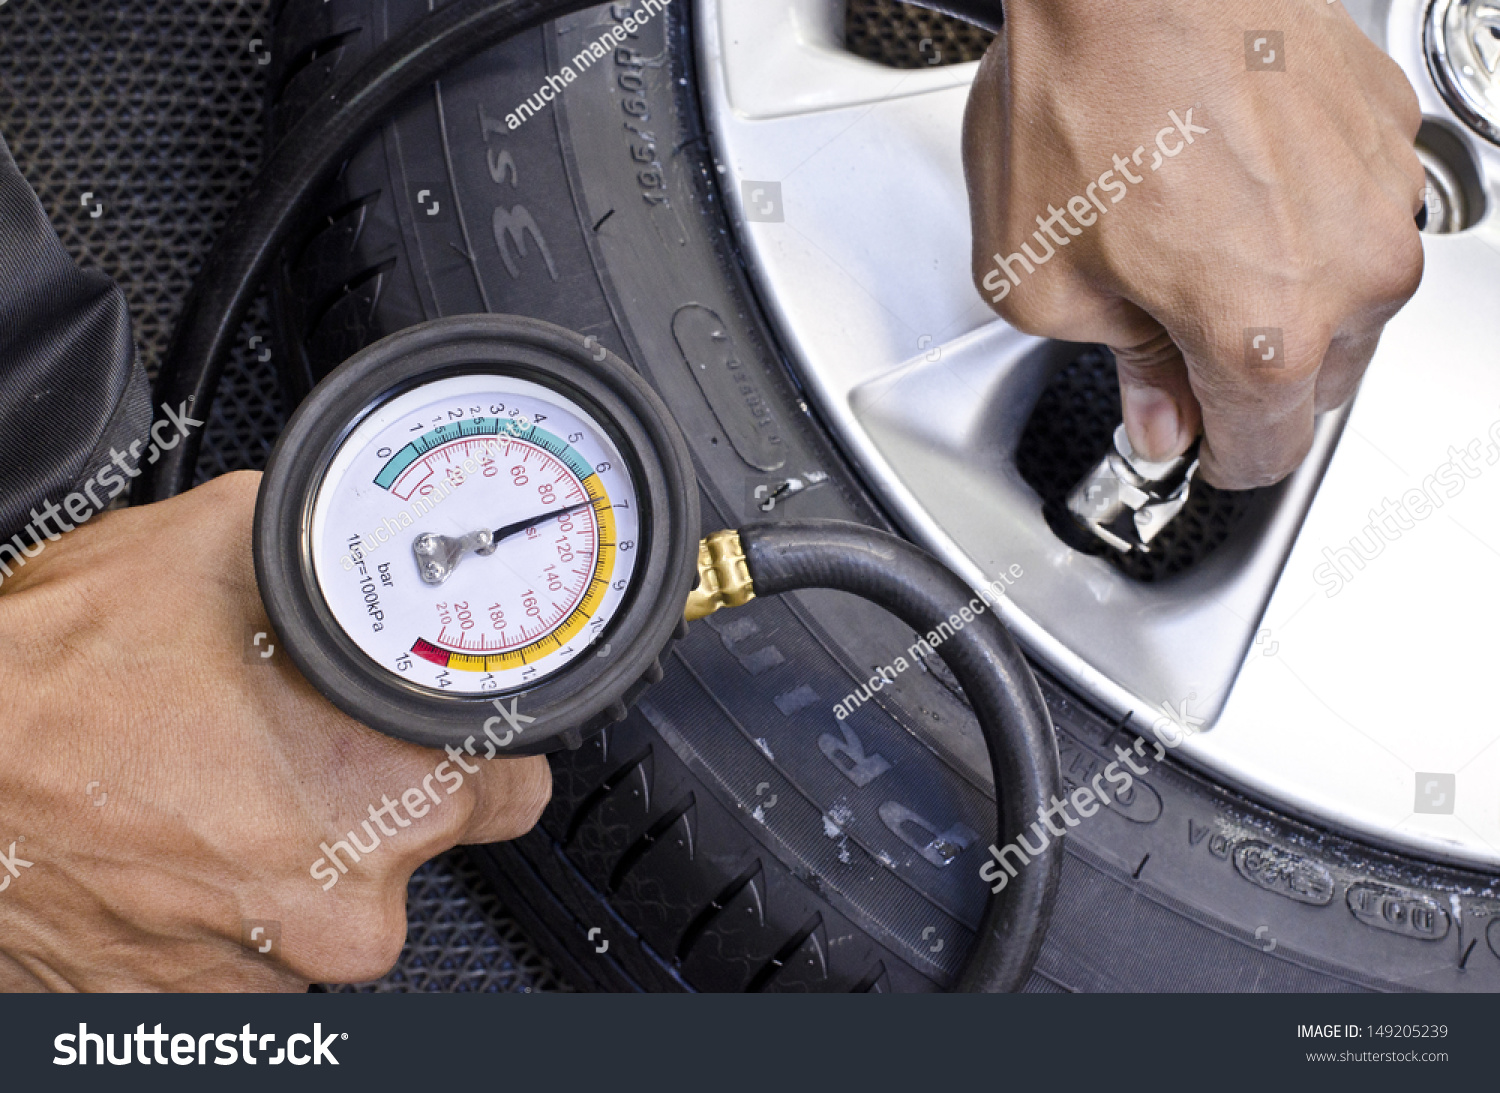 checking tire pressure pumping air into auto wheel vehicle safe concept stock photo 149205239. Black Bedroom Furniture Sets. Home Design Ideas